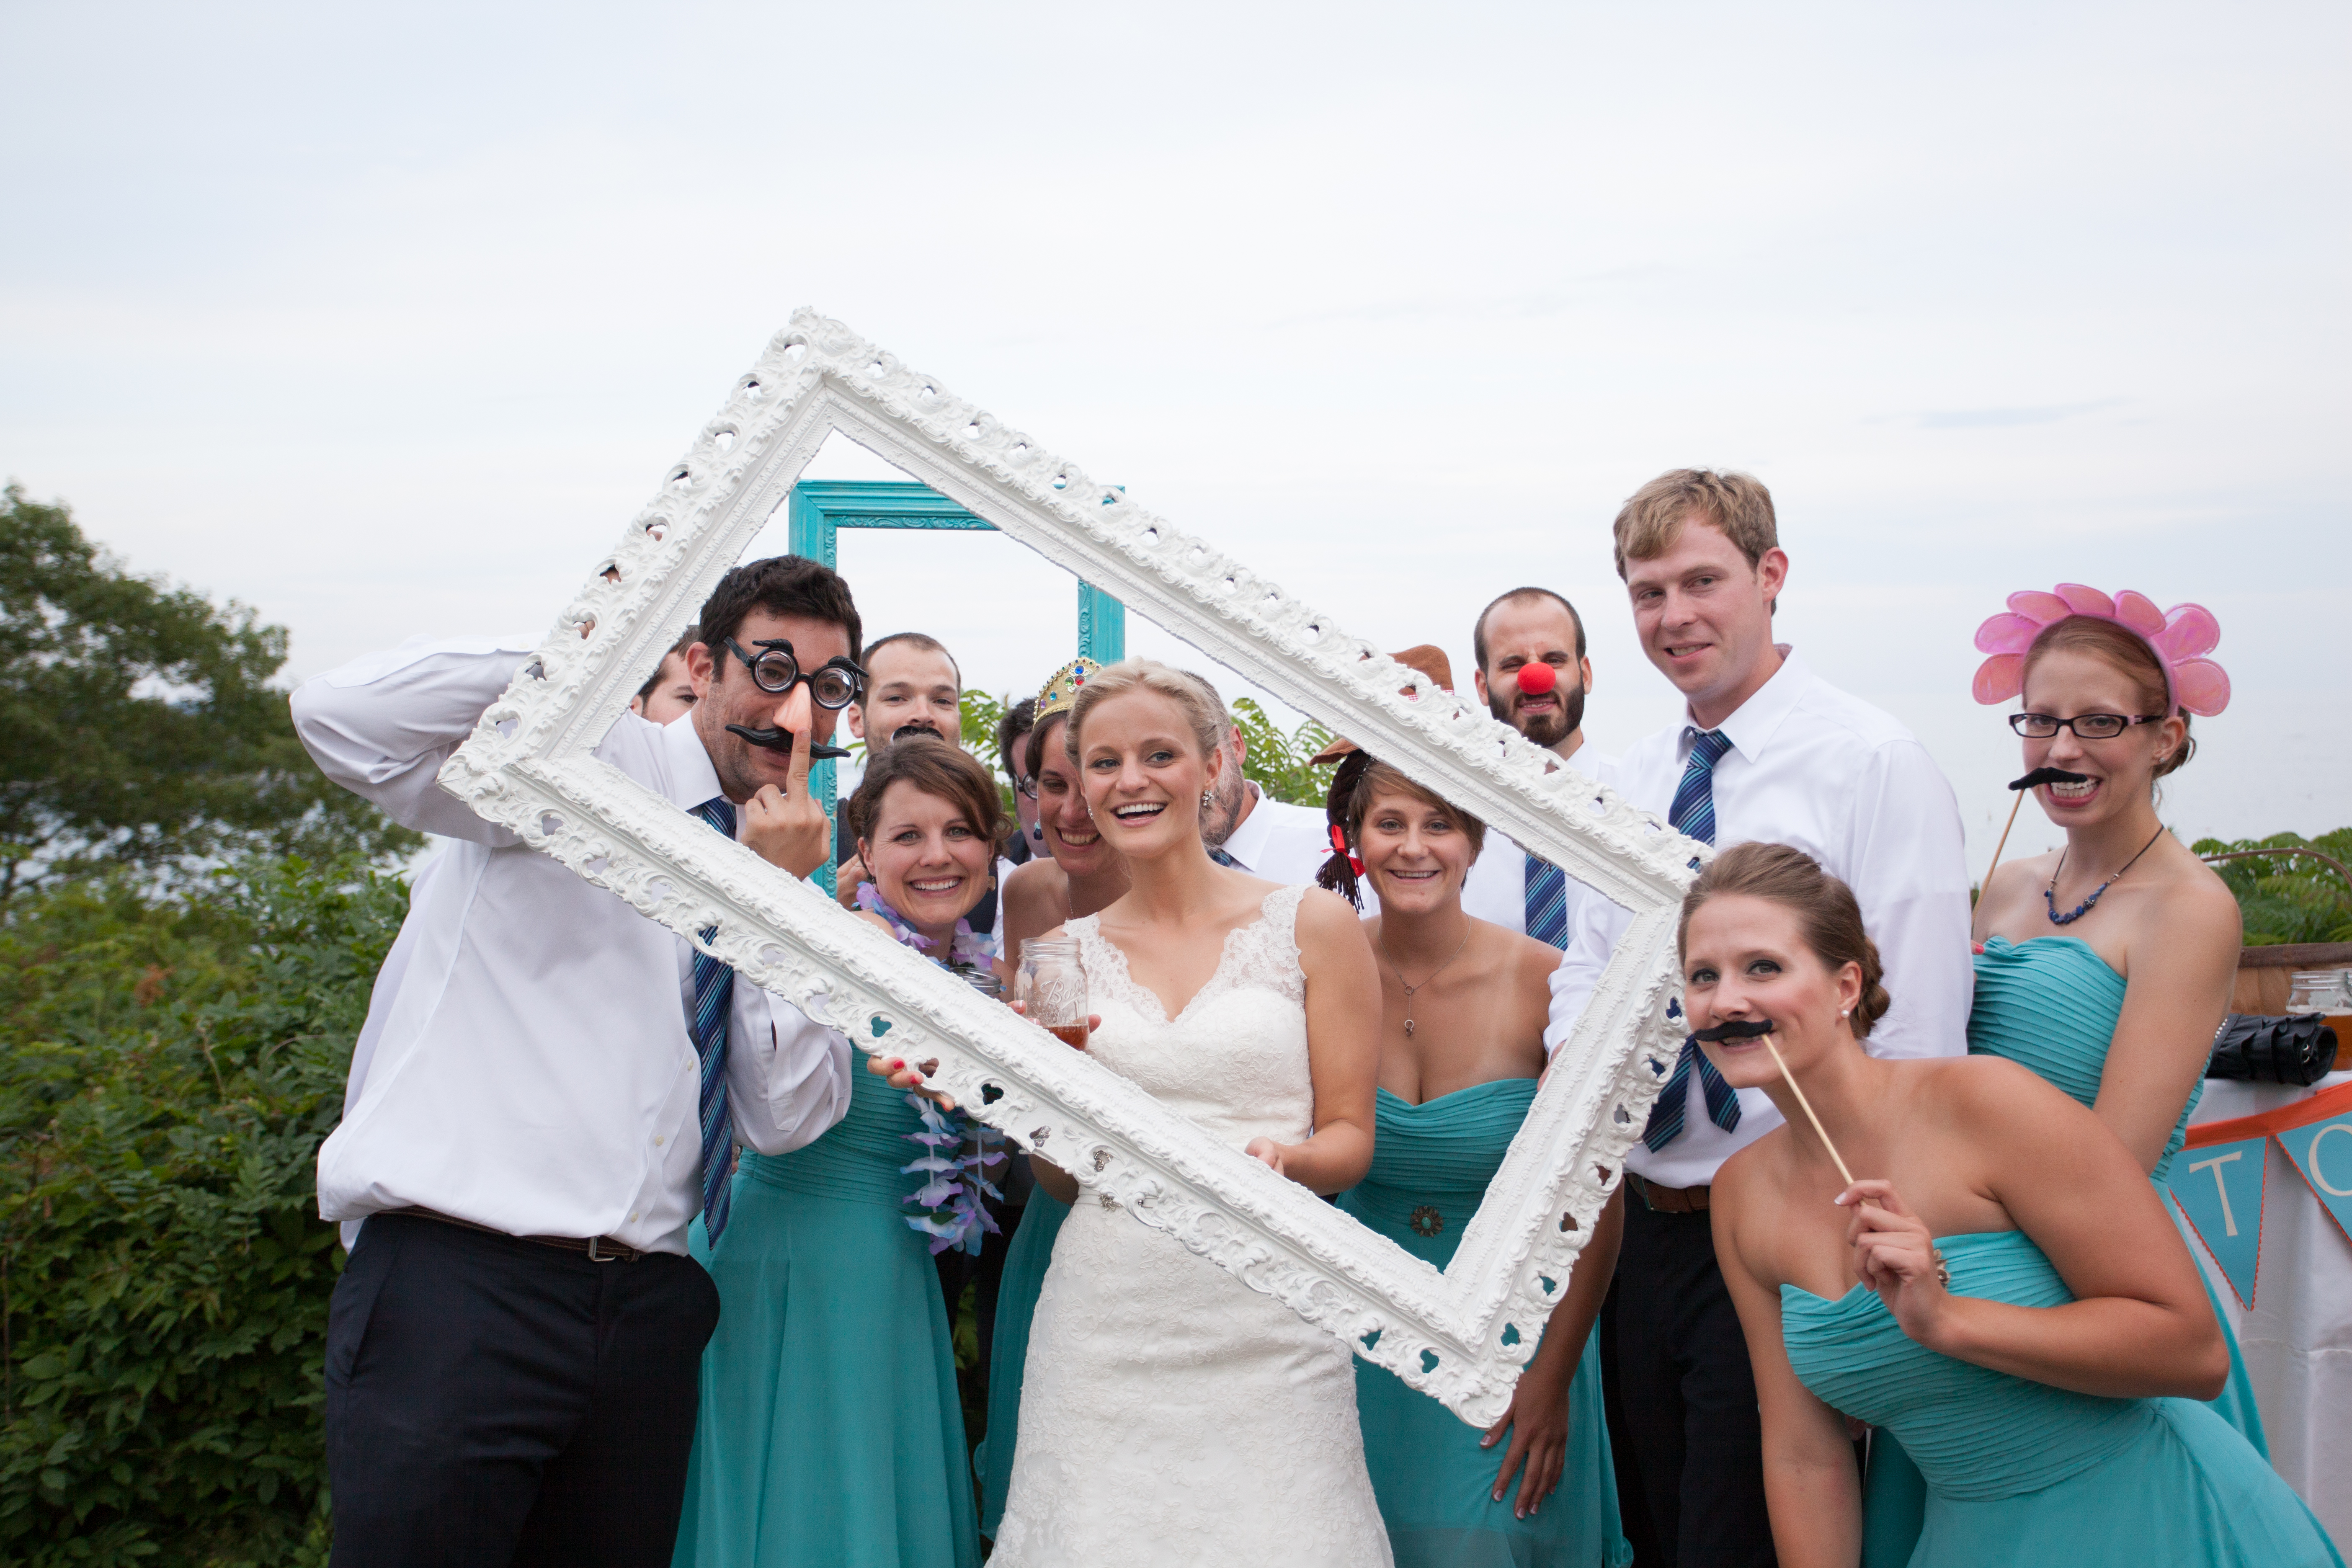 large frame photo-booth props - Kivalo Photography Blog